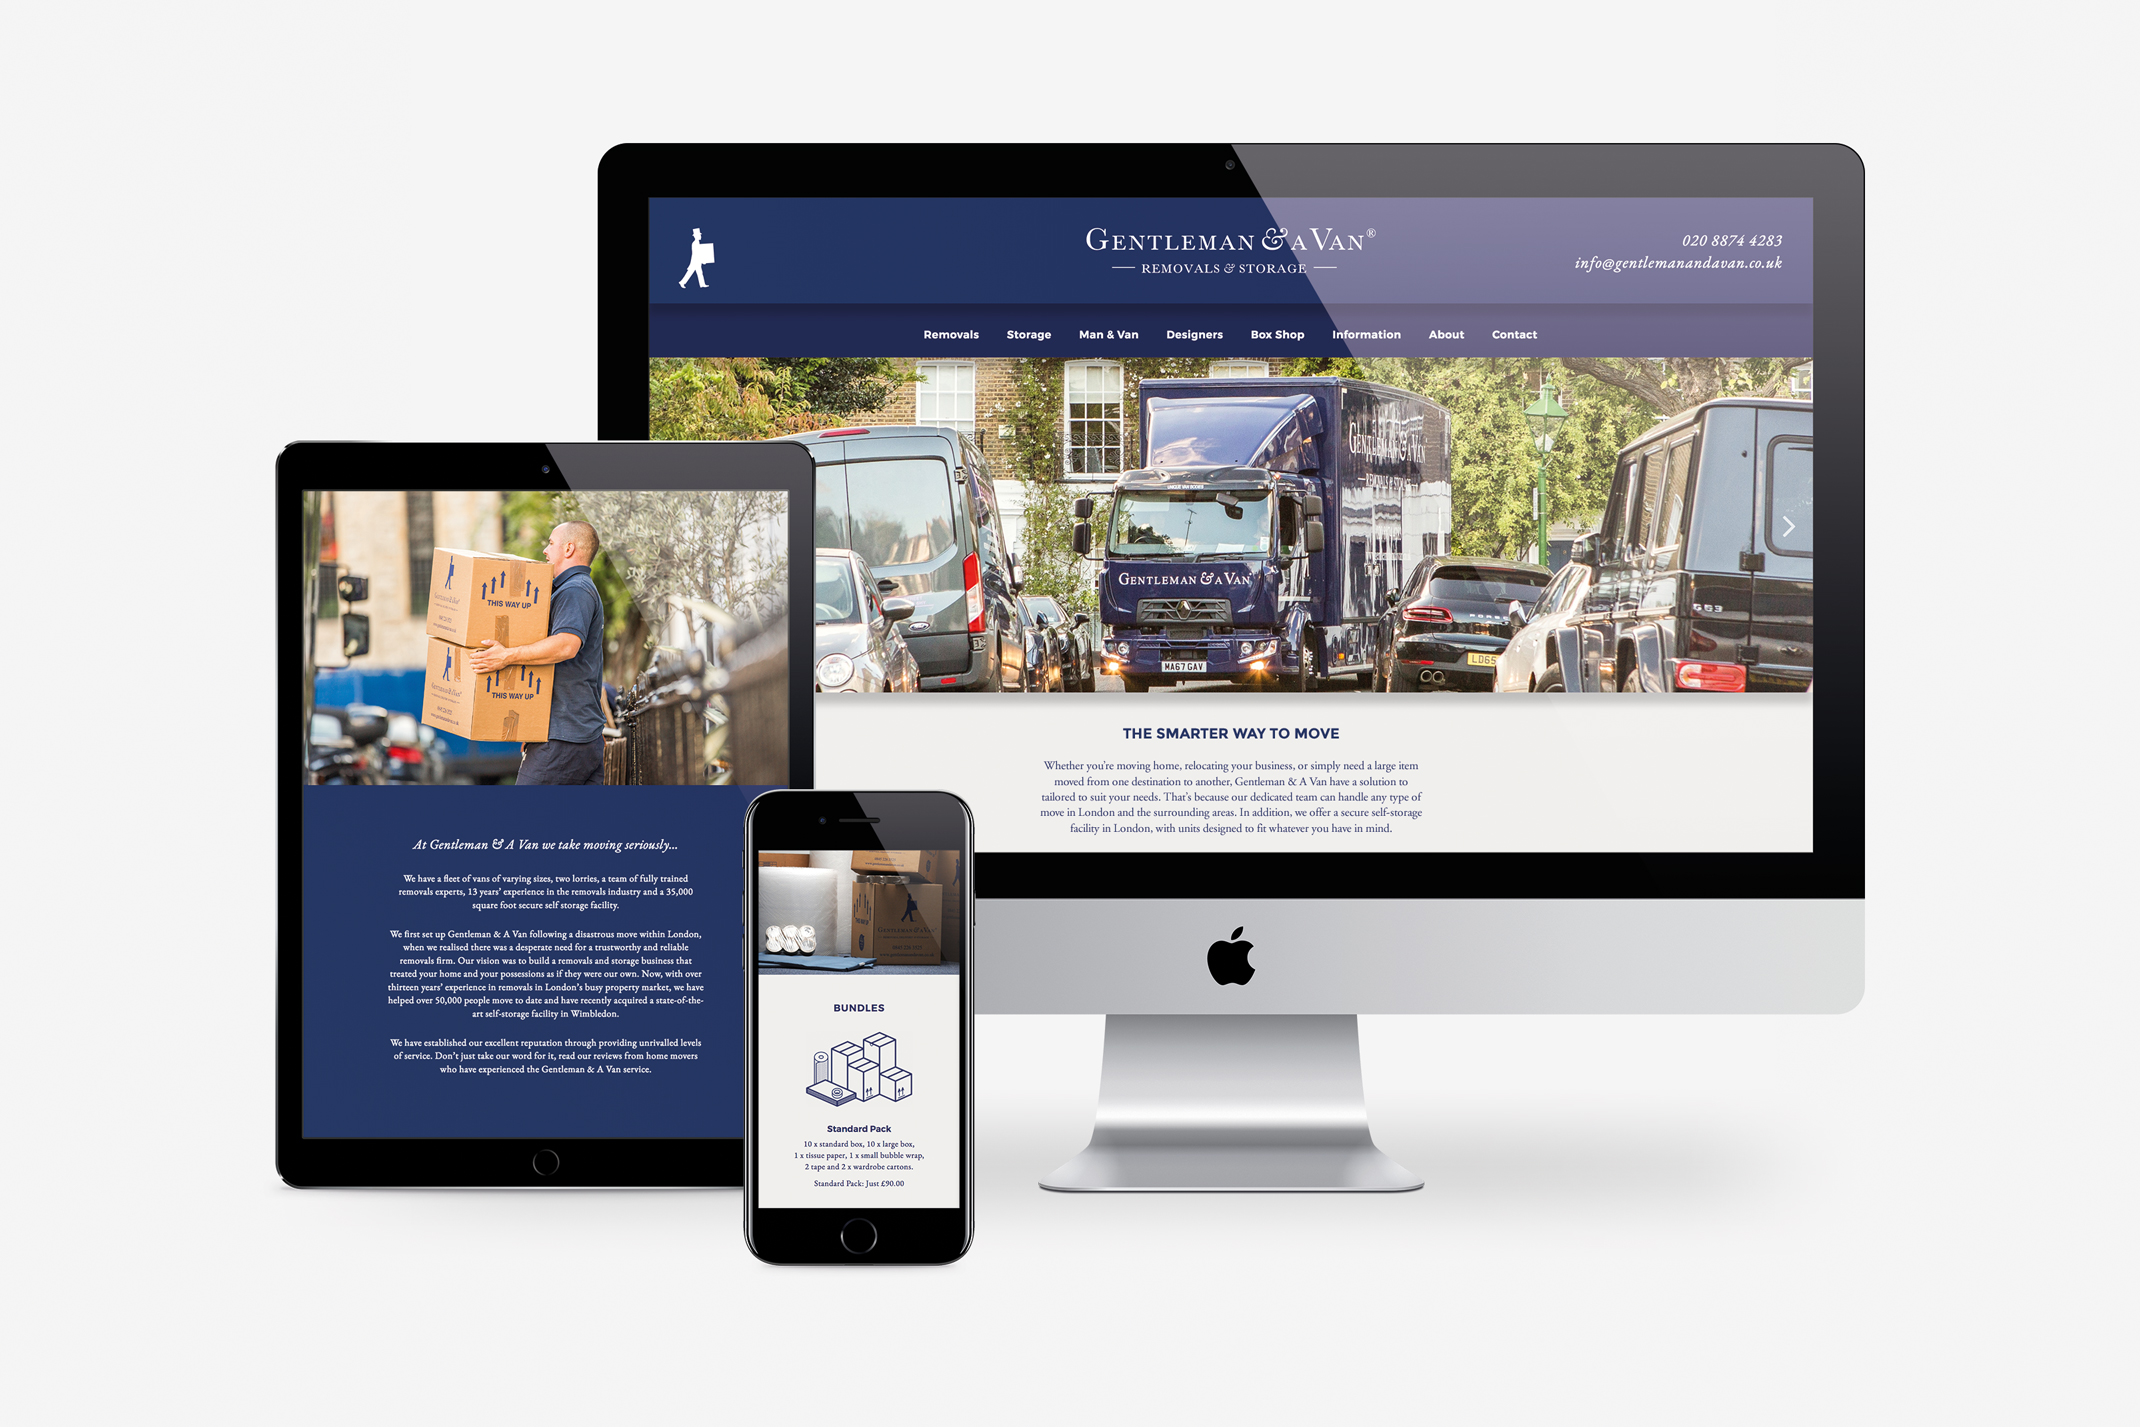 Charlie Smith Design – We love finding solutions to our